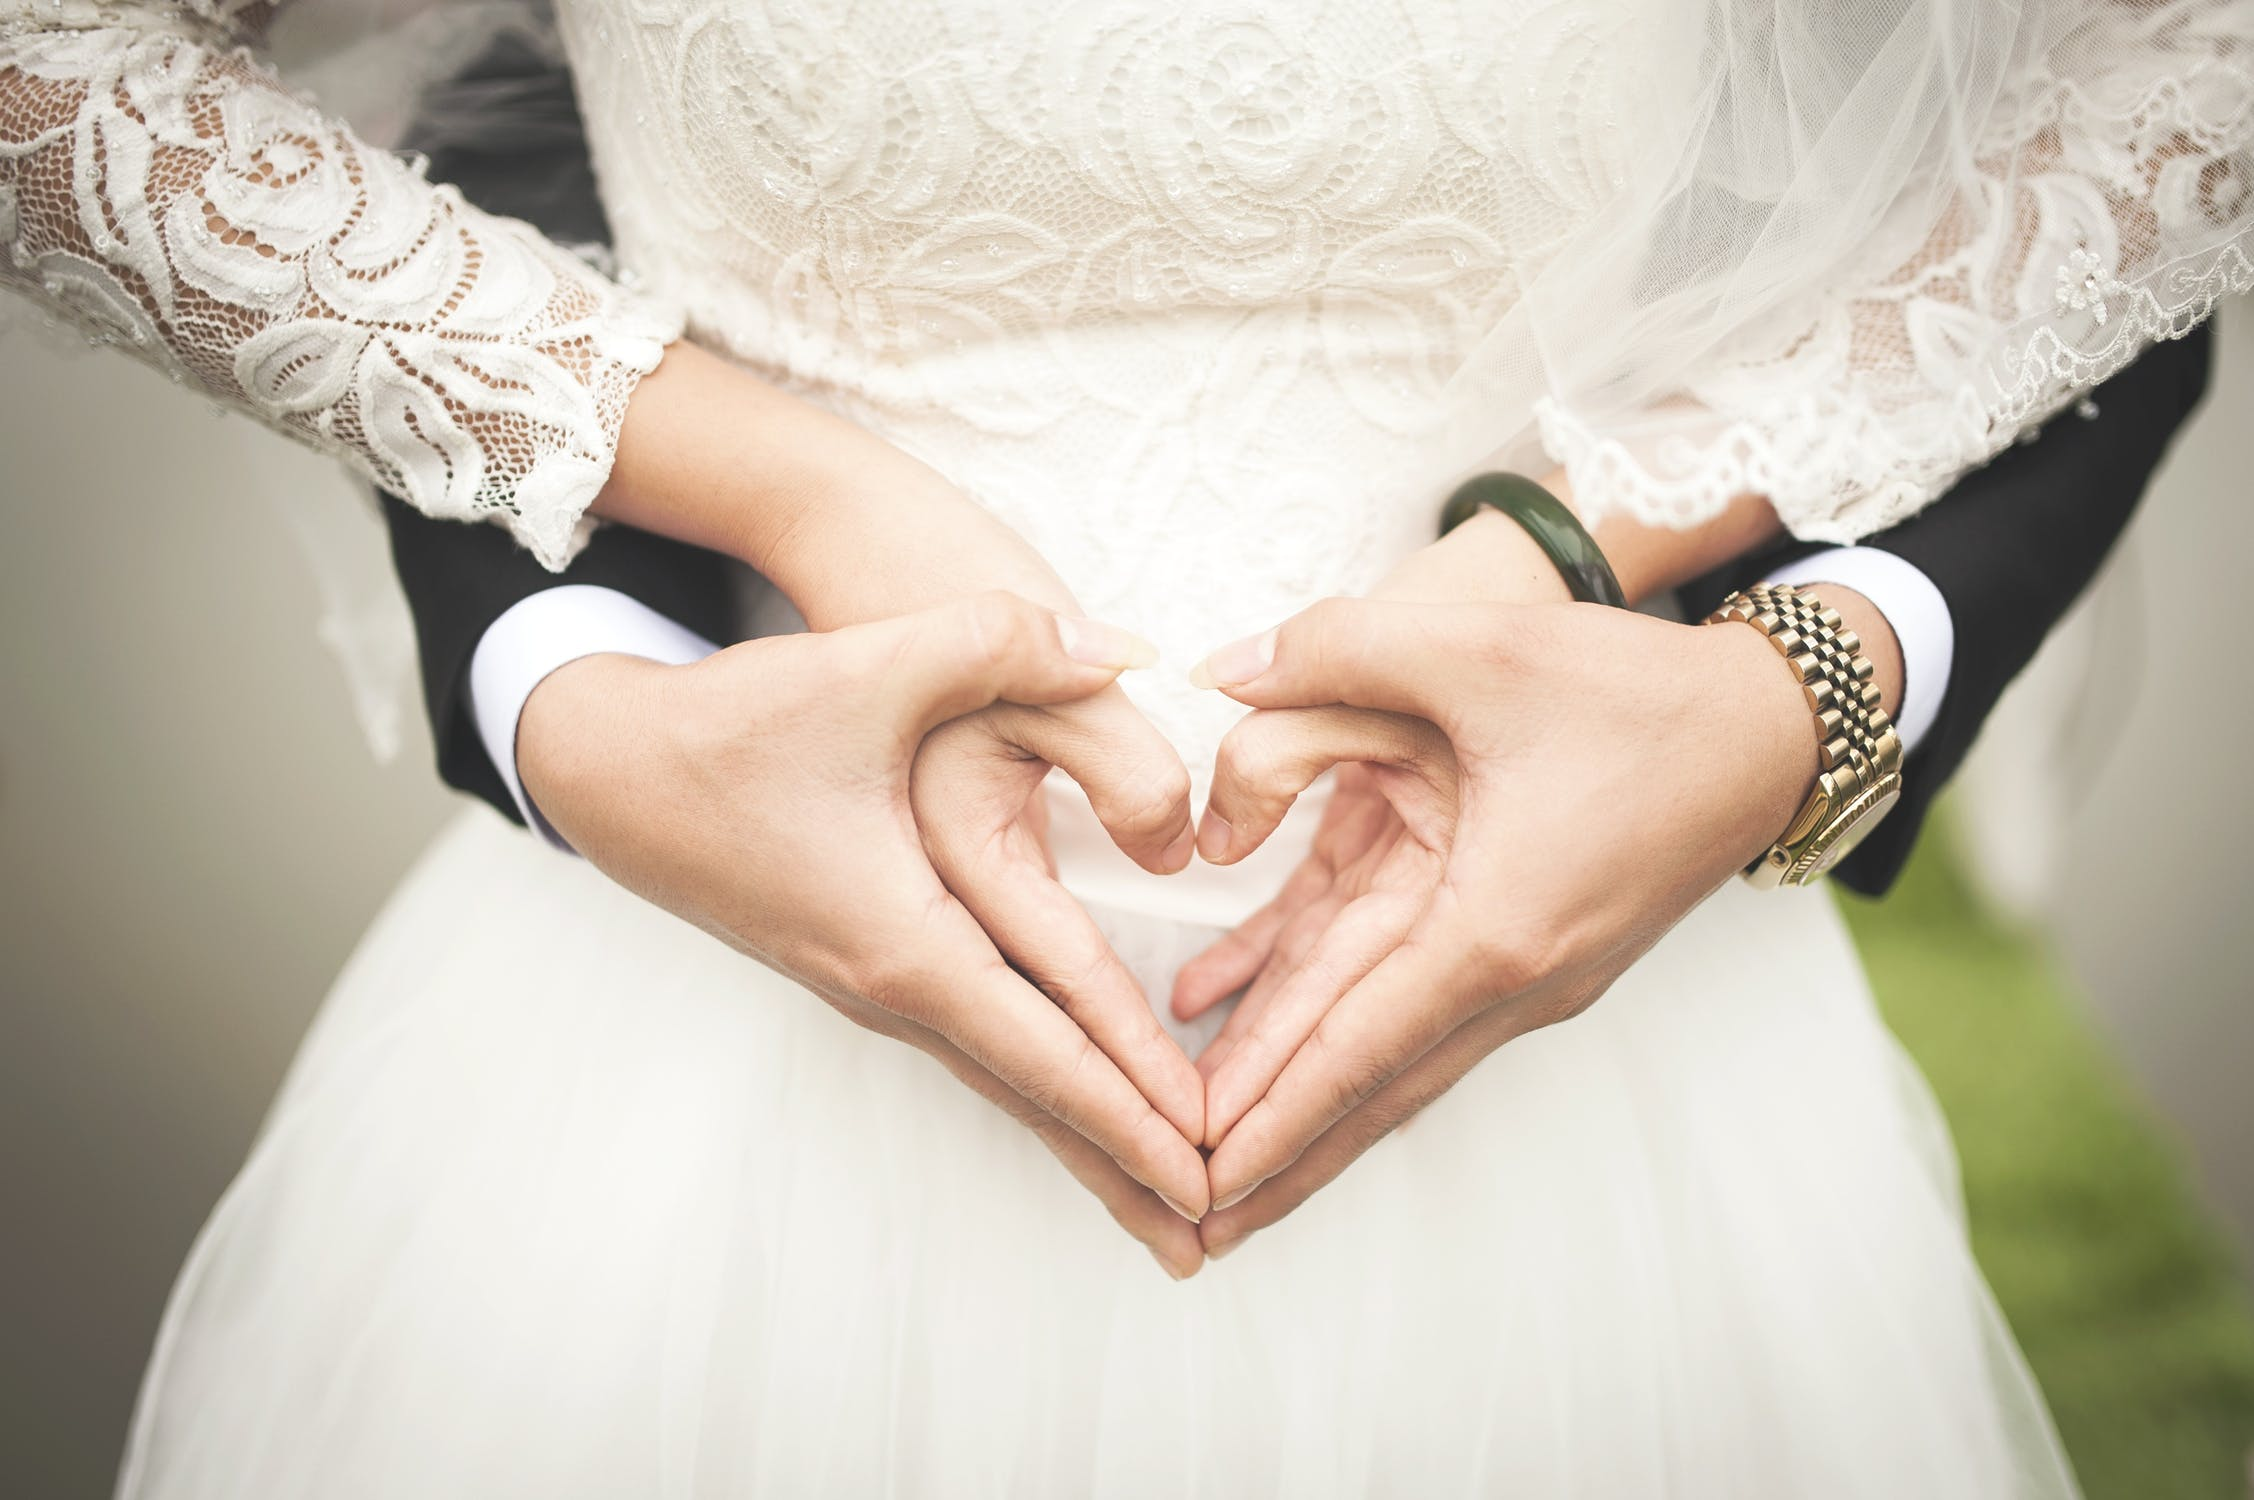 2 Crucial Things To Consider Before Remarrying After Divorce